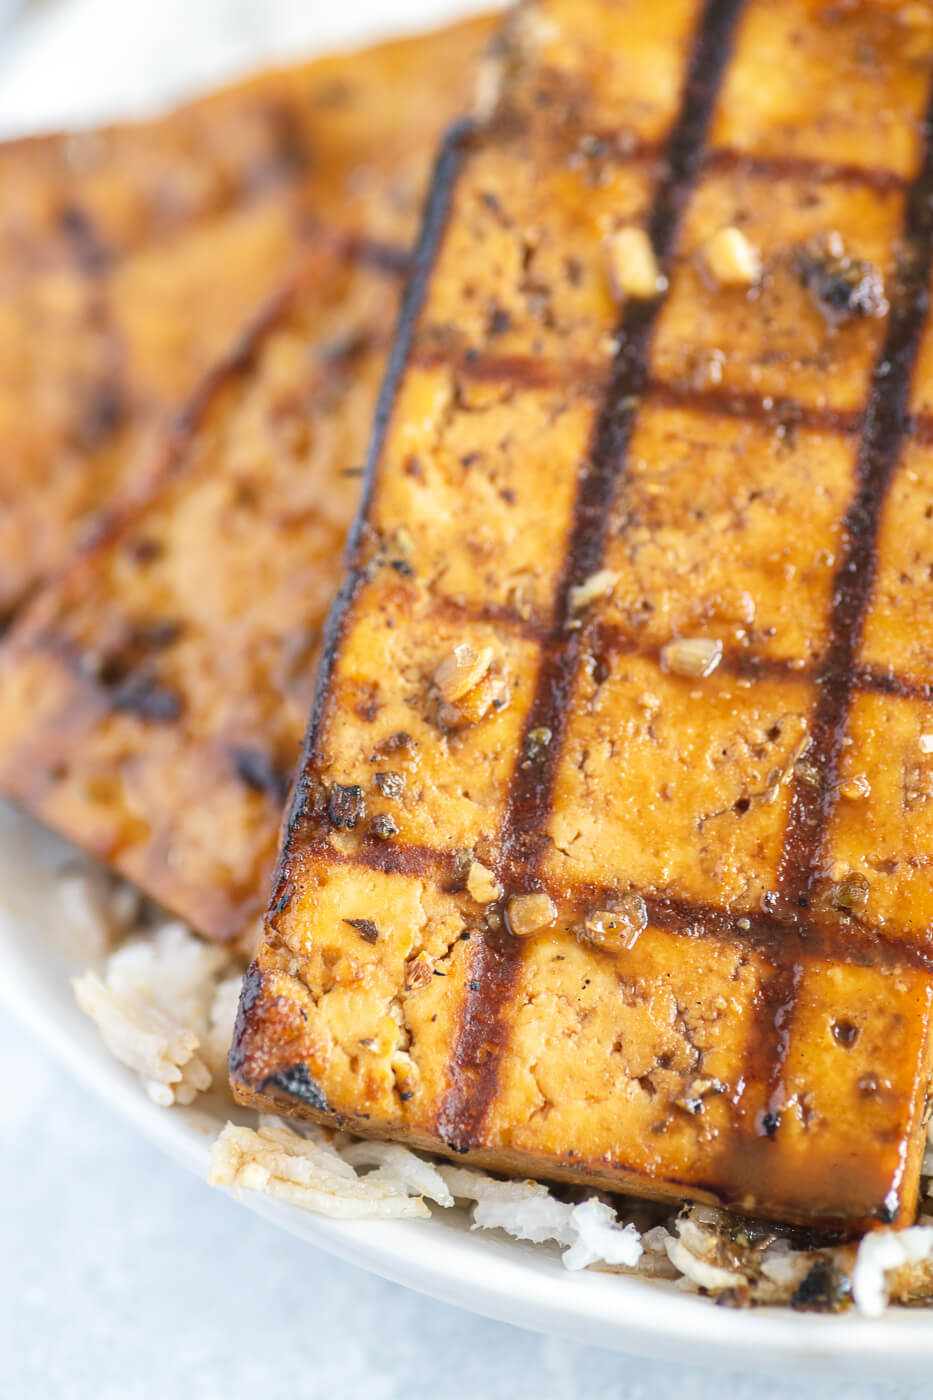 A close-up of grilled tofu steaks.